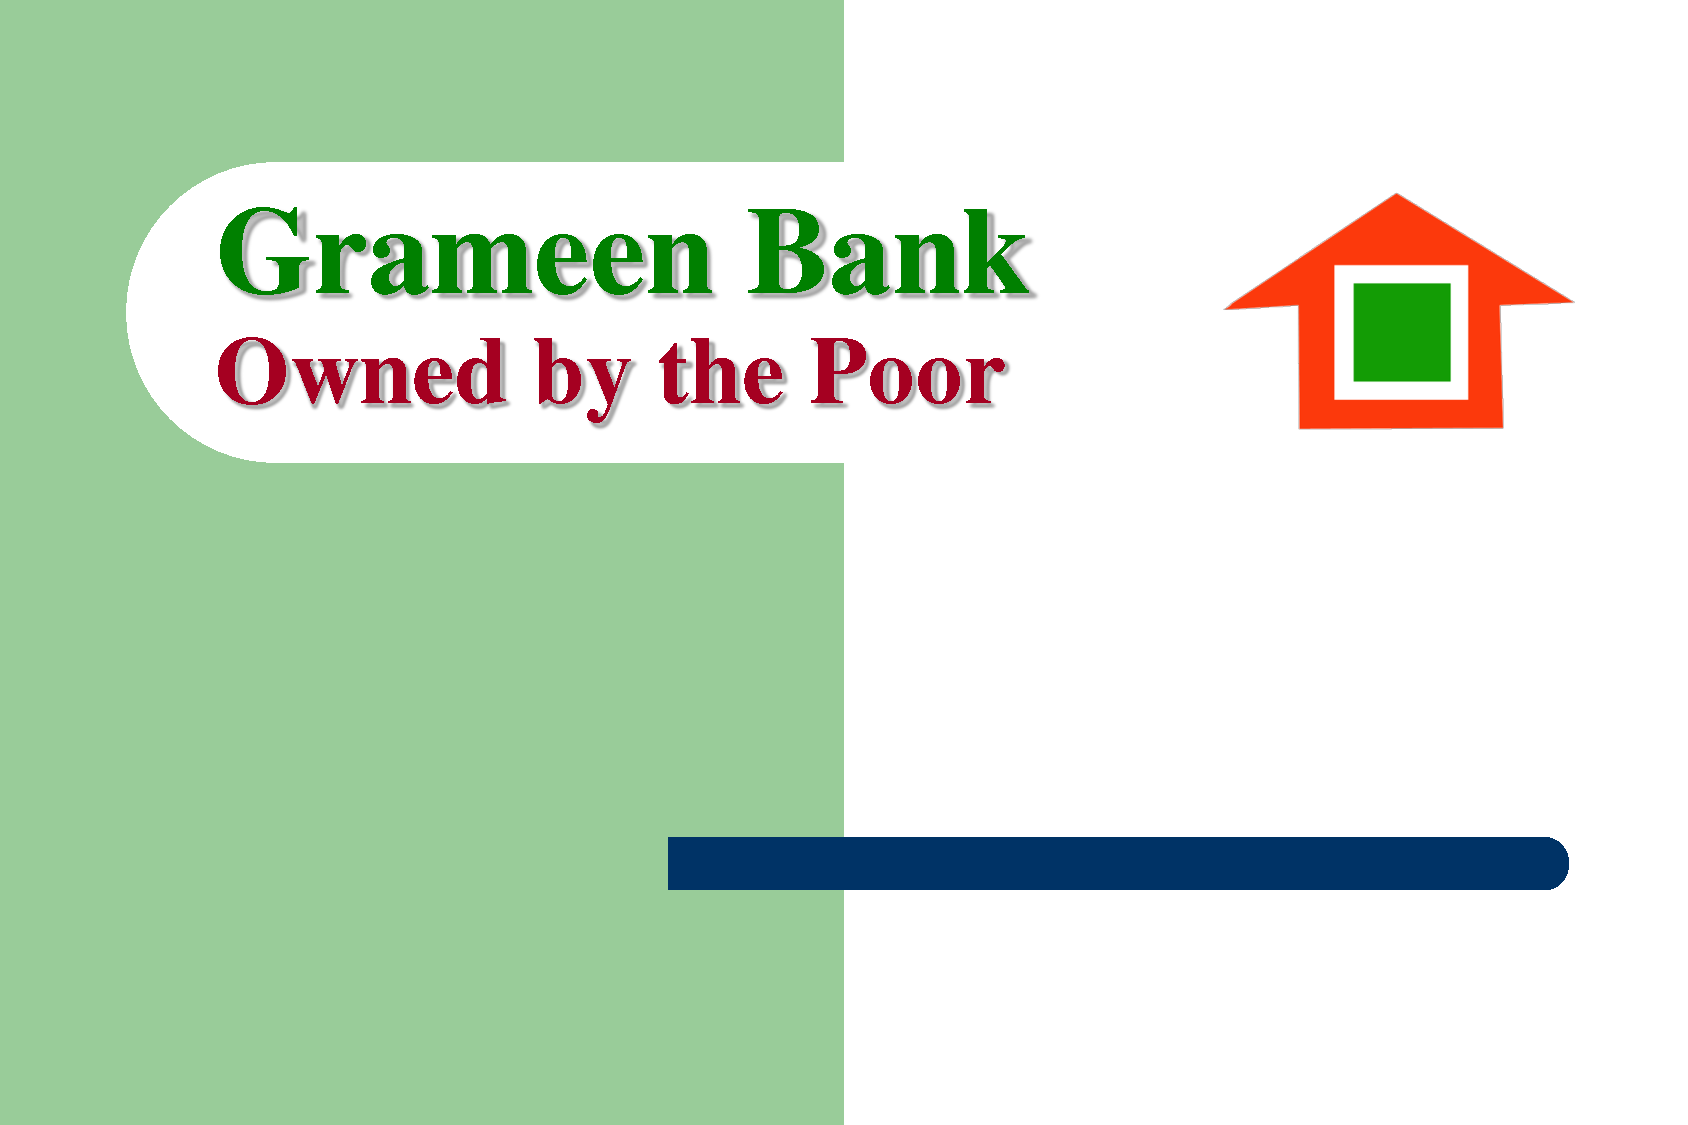 challenging the vision grameen bank He was able to take the grameen bank from a single branch and help it grow larger and larger as an organizational consultant despite the ongoing natural calamities that plague bangladesh but he was the one who showed the world that they could work on a large scale.